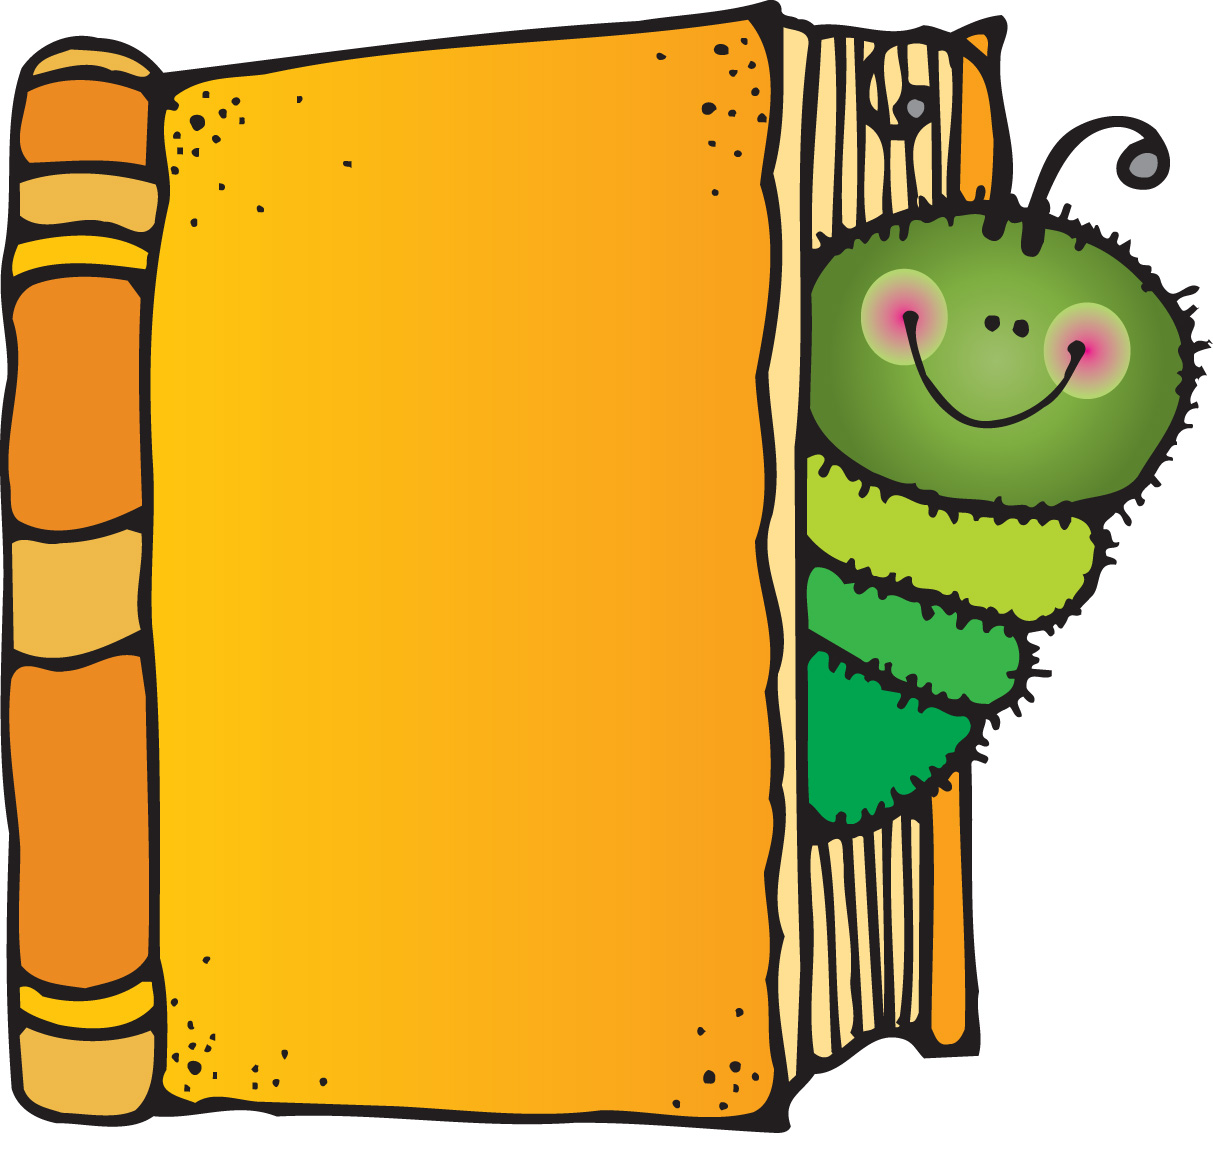 Image of Childrens Book Clipart #10170, Book Club Clip Art.